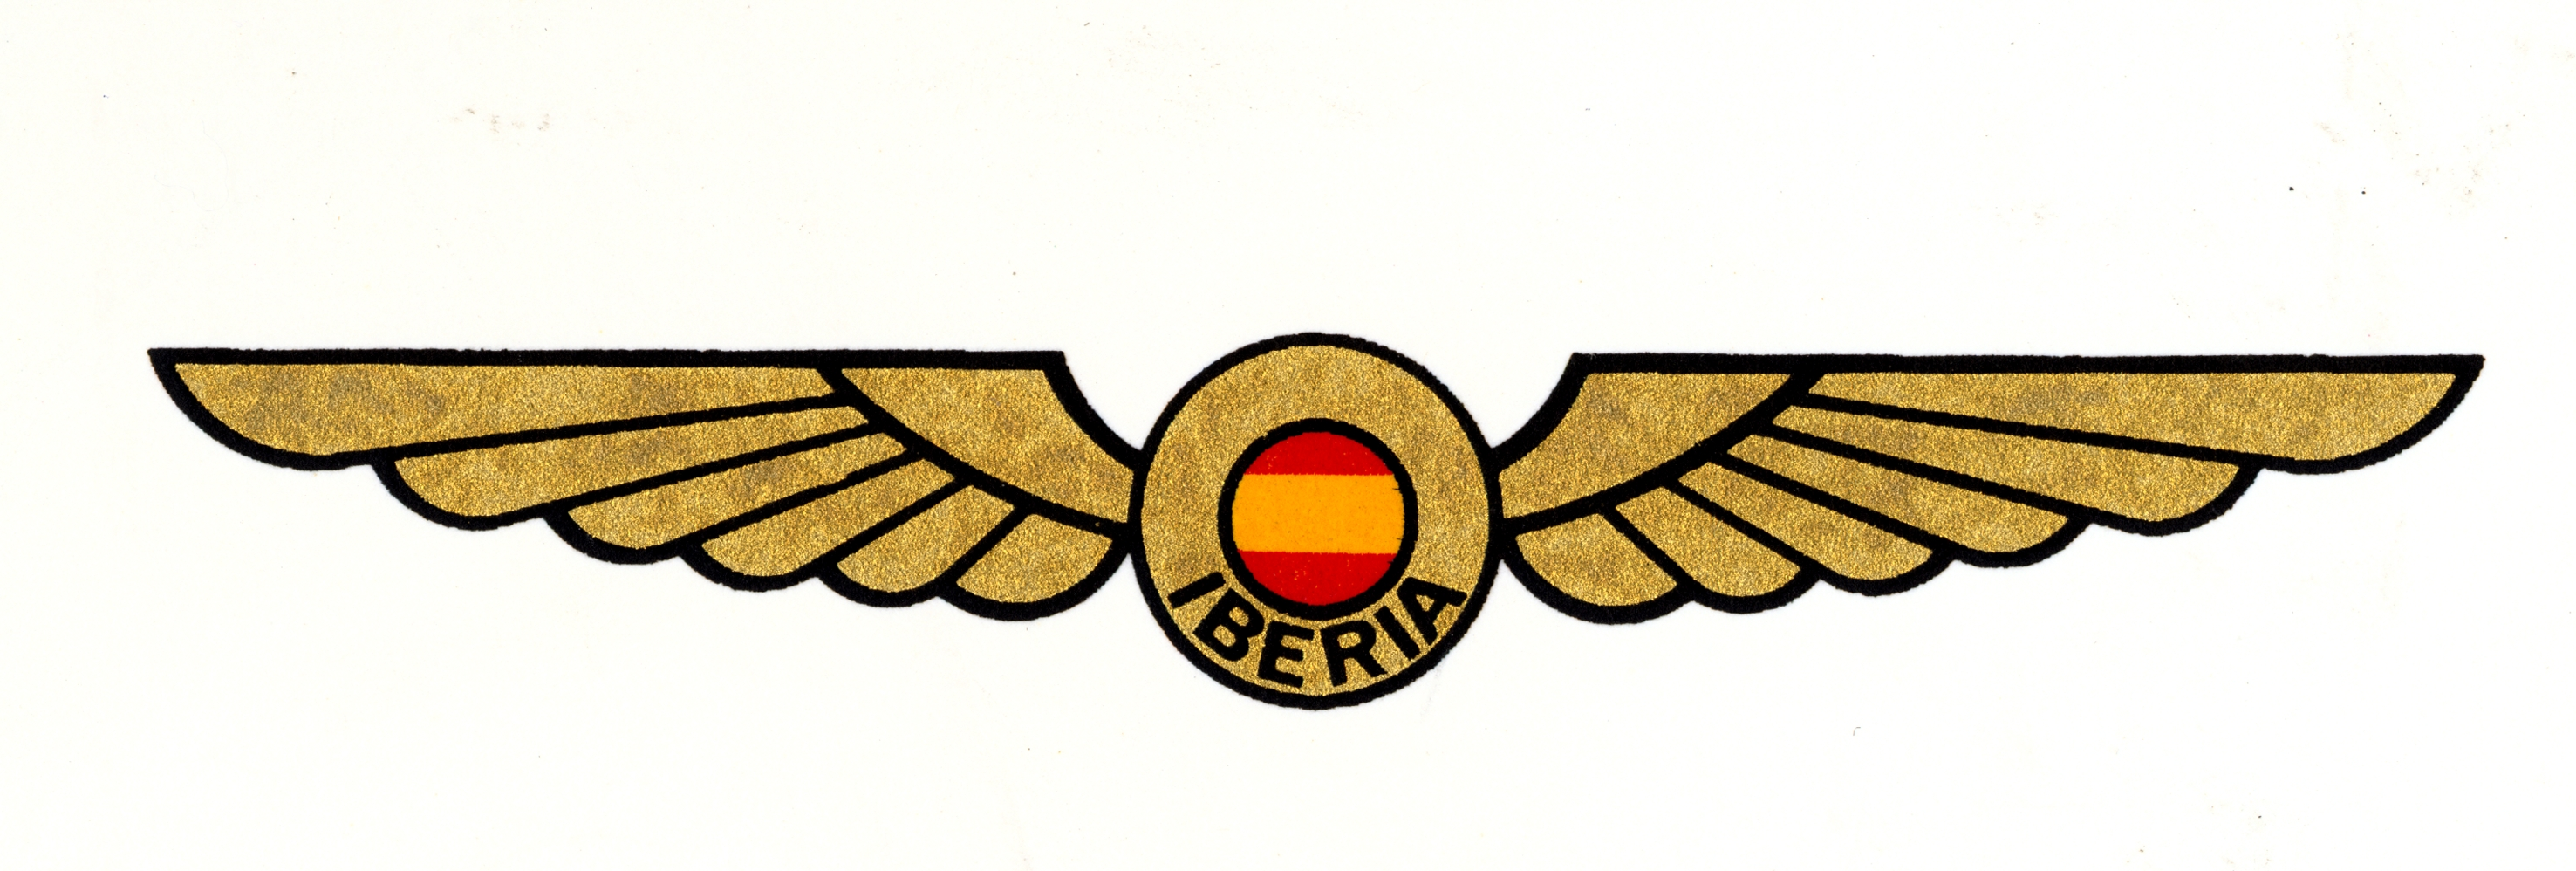 Iberia Logo Wallpaper